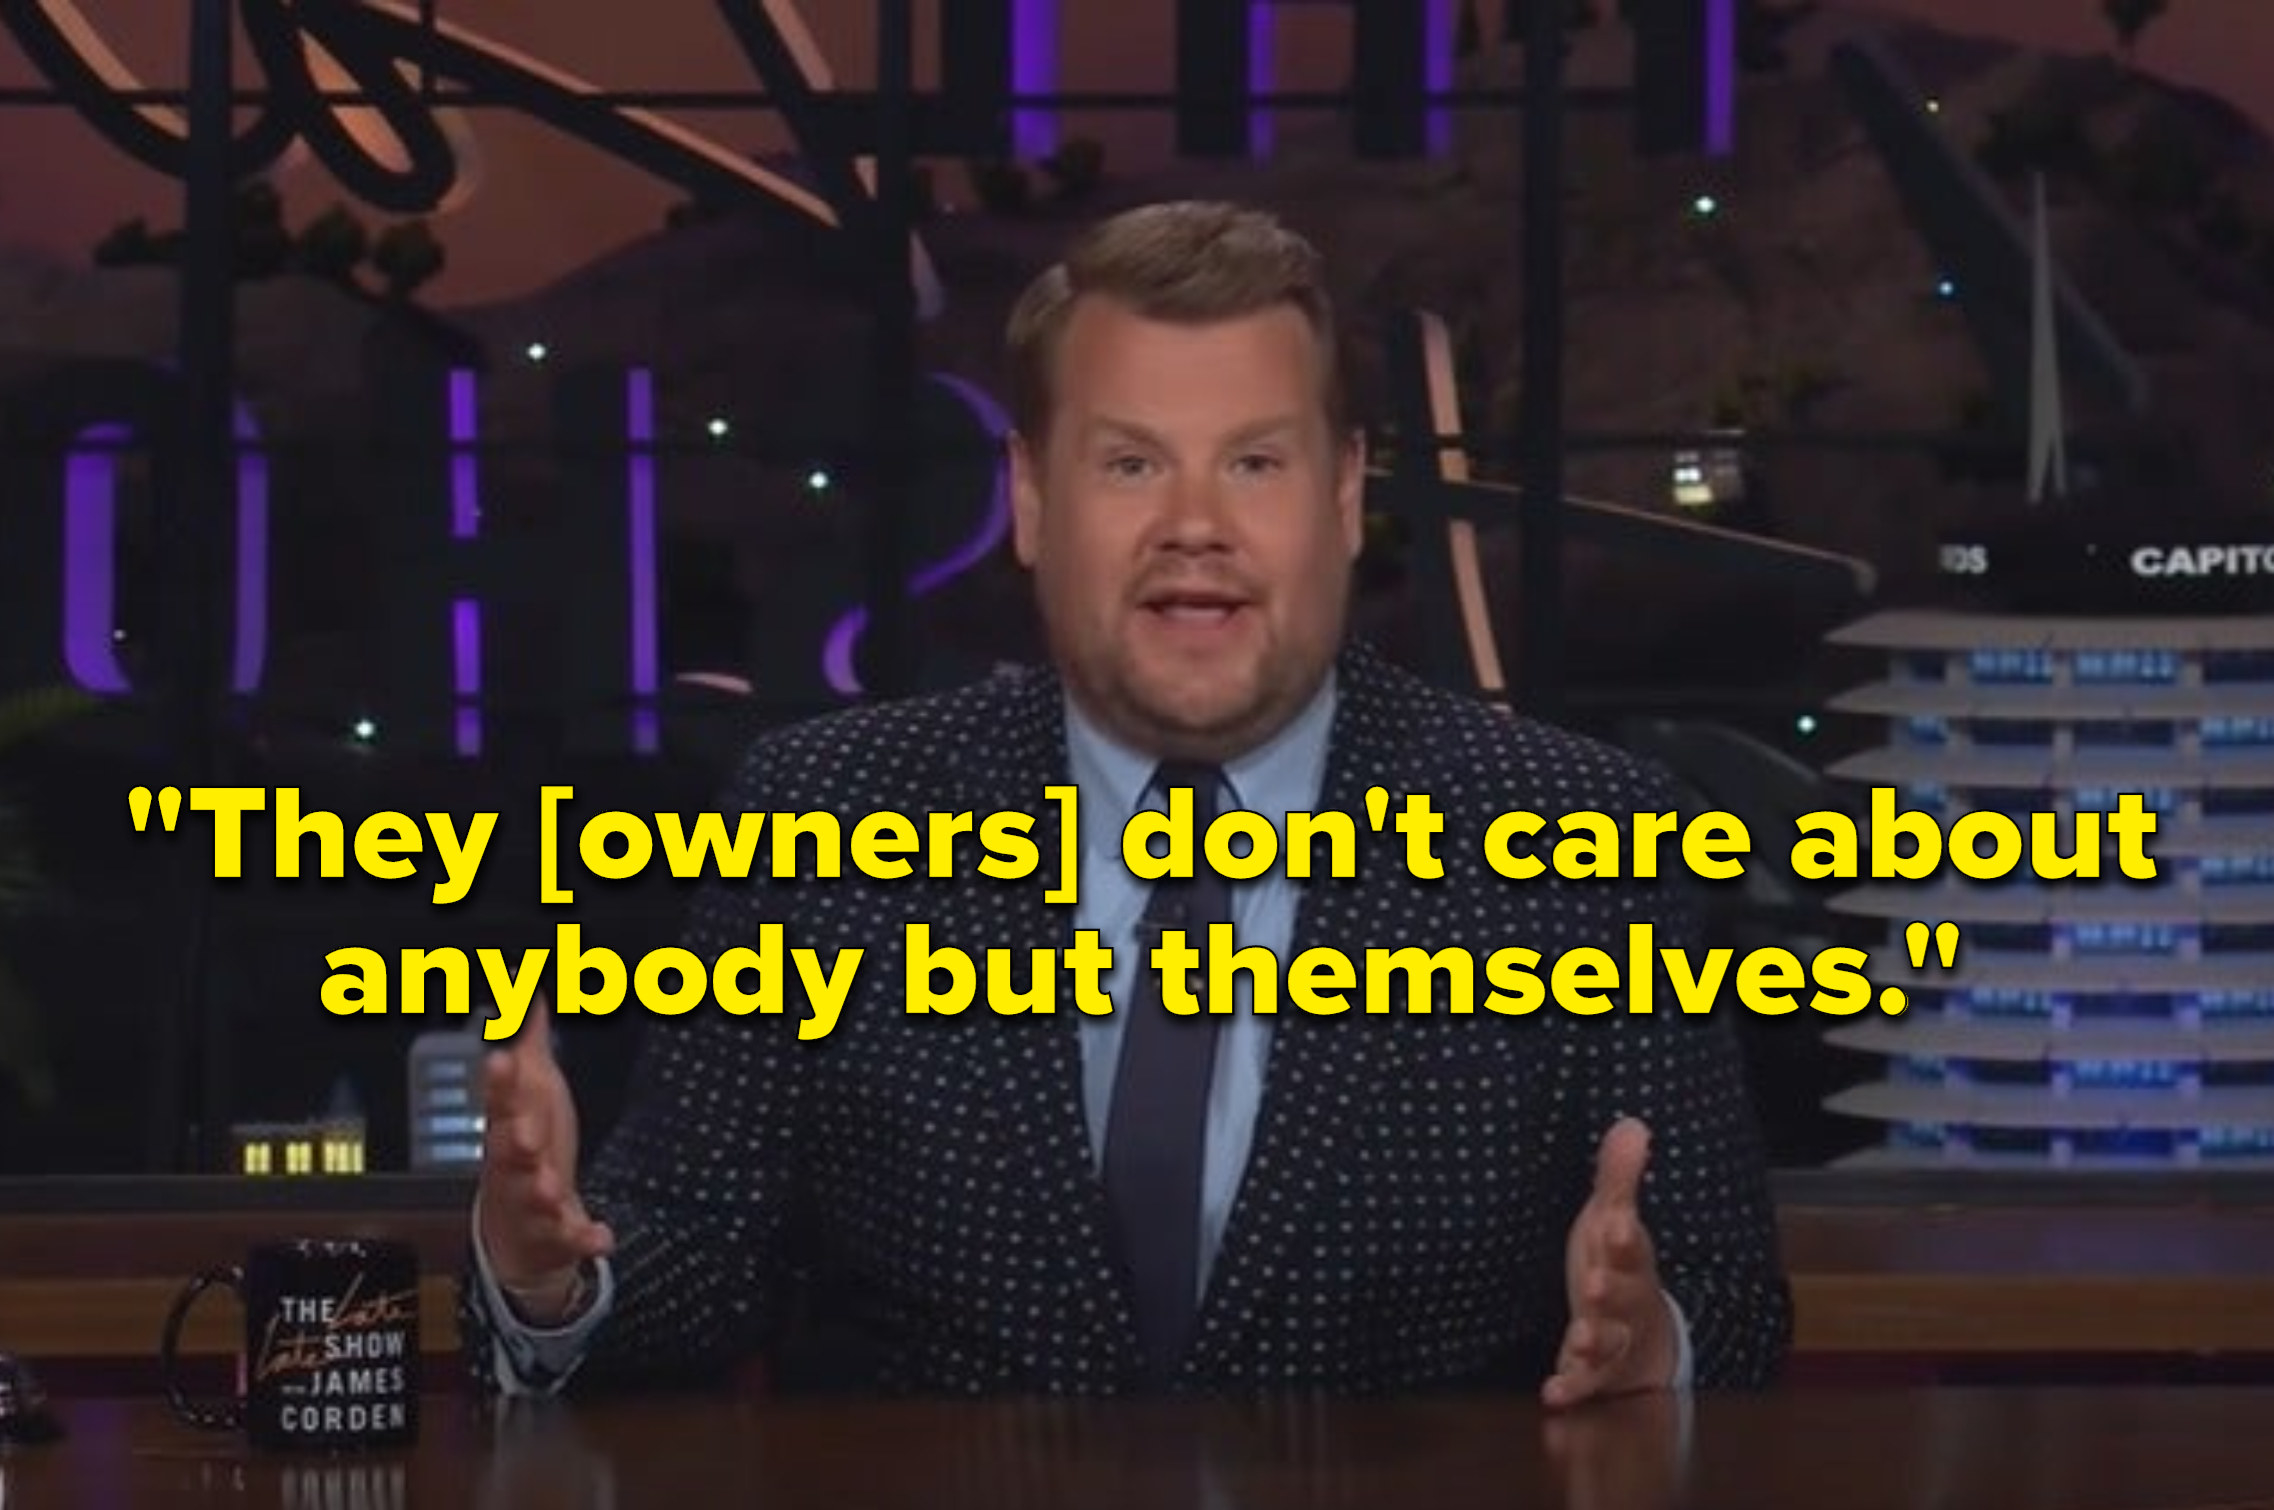 """James Corden with the quote: """"They don't care about anybody but themselves"""""""